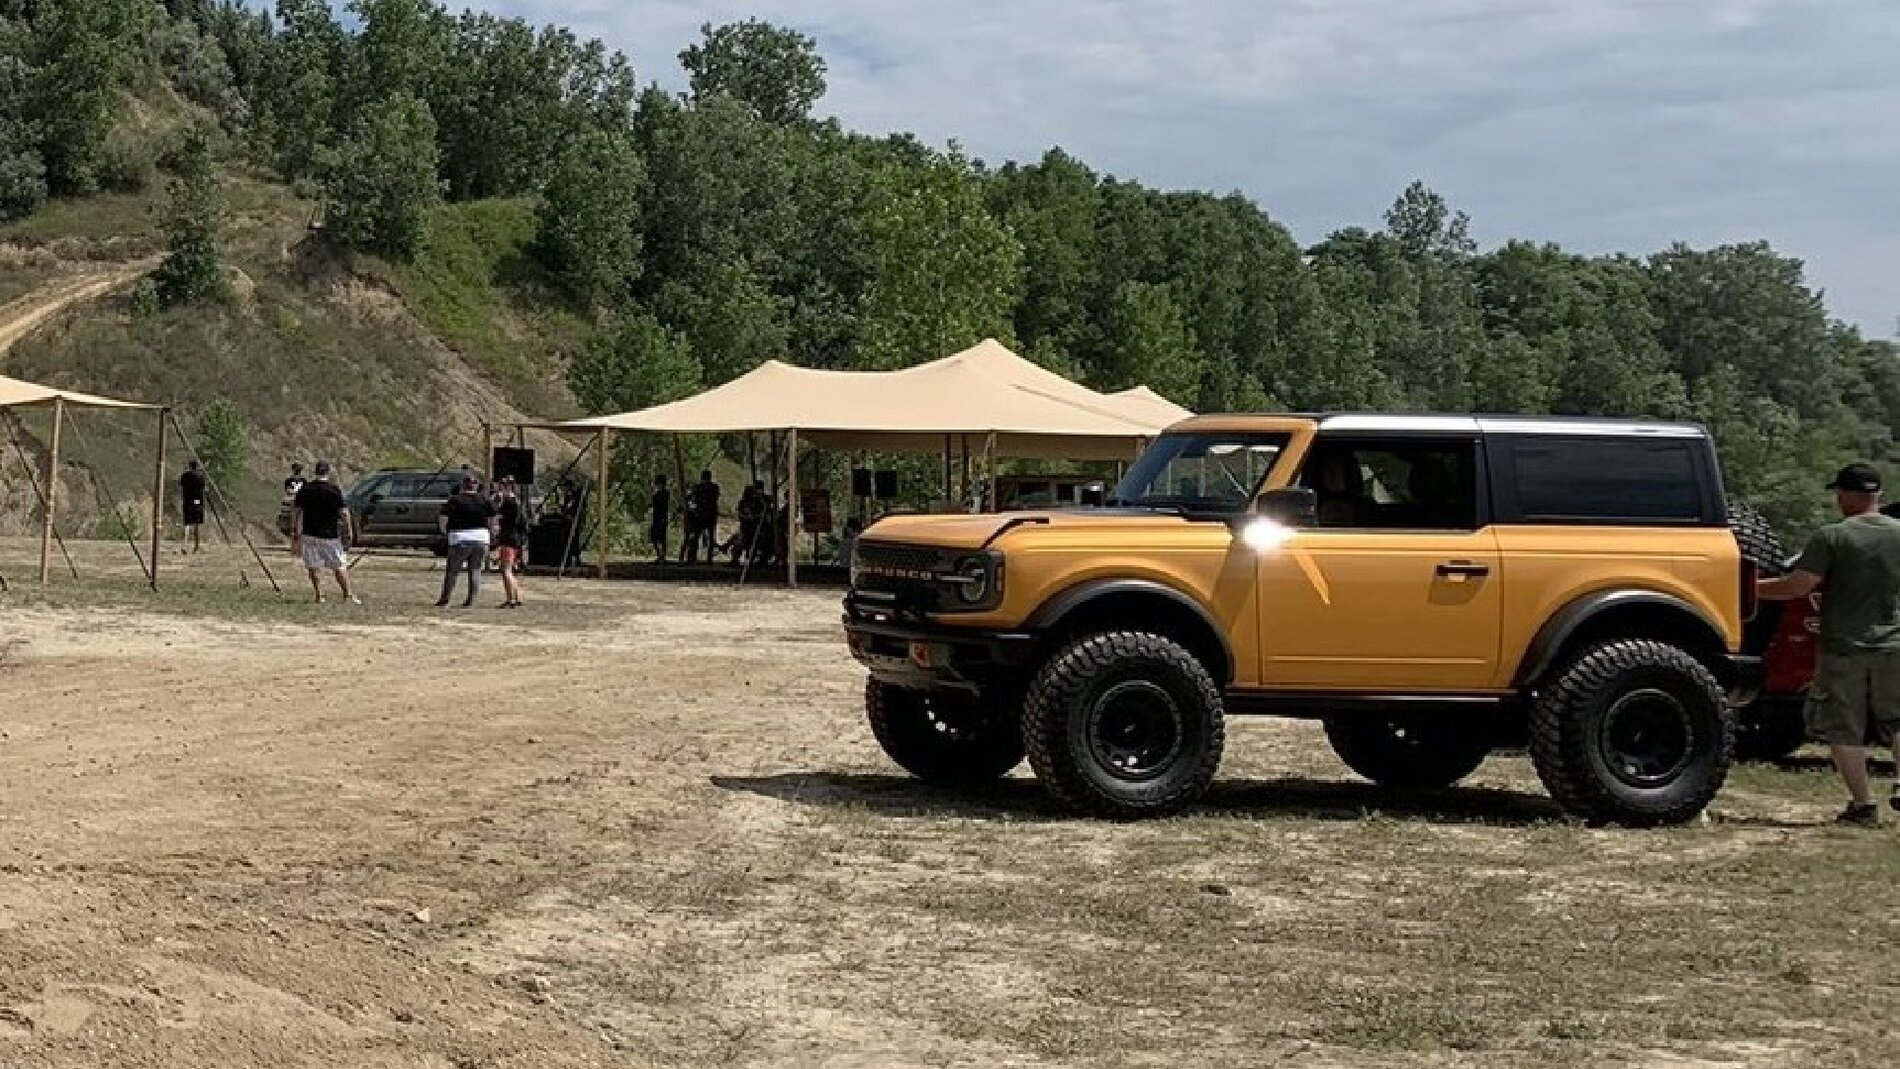 2021 Ford Bronco Day Ride Along Event 2.jpg